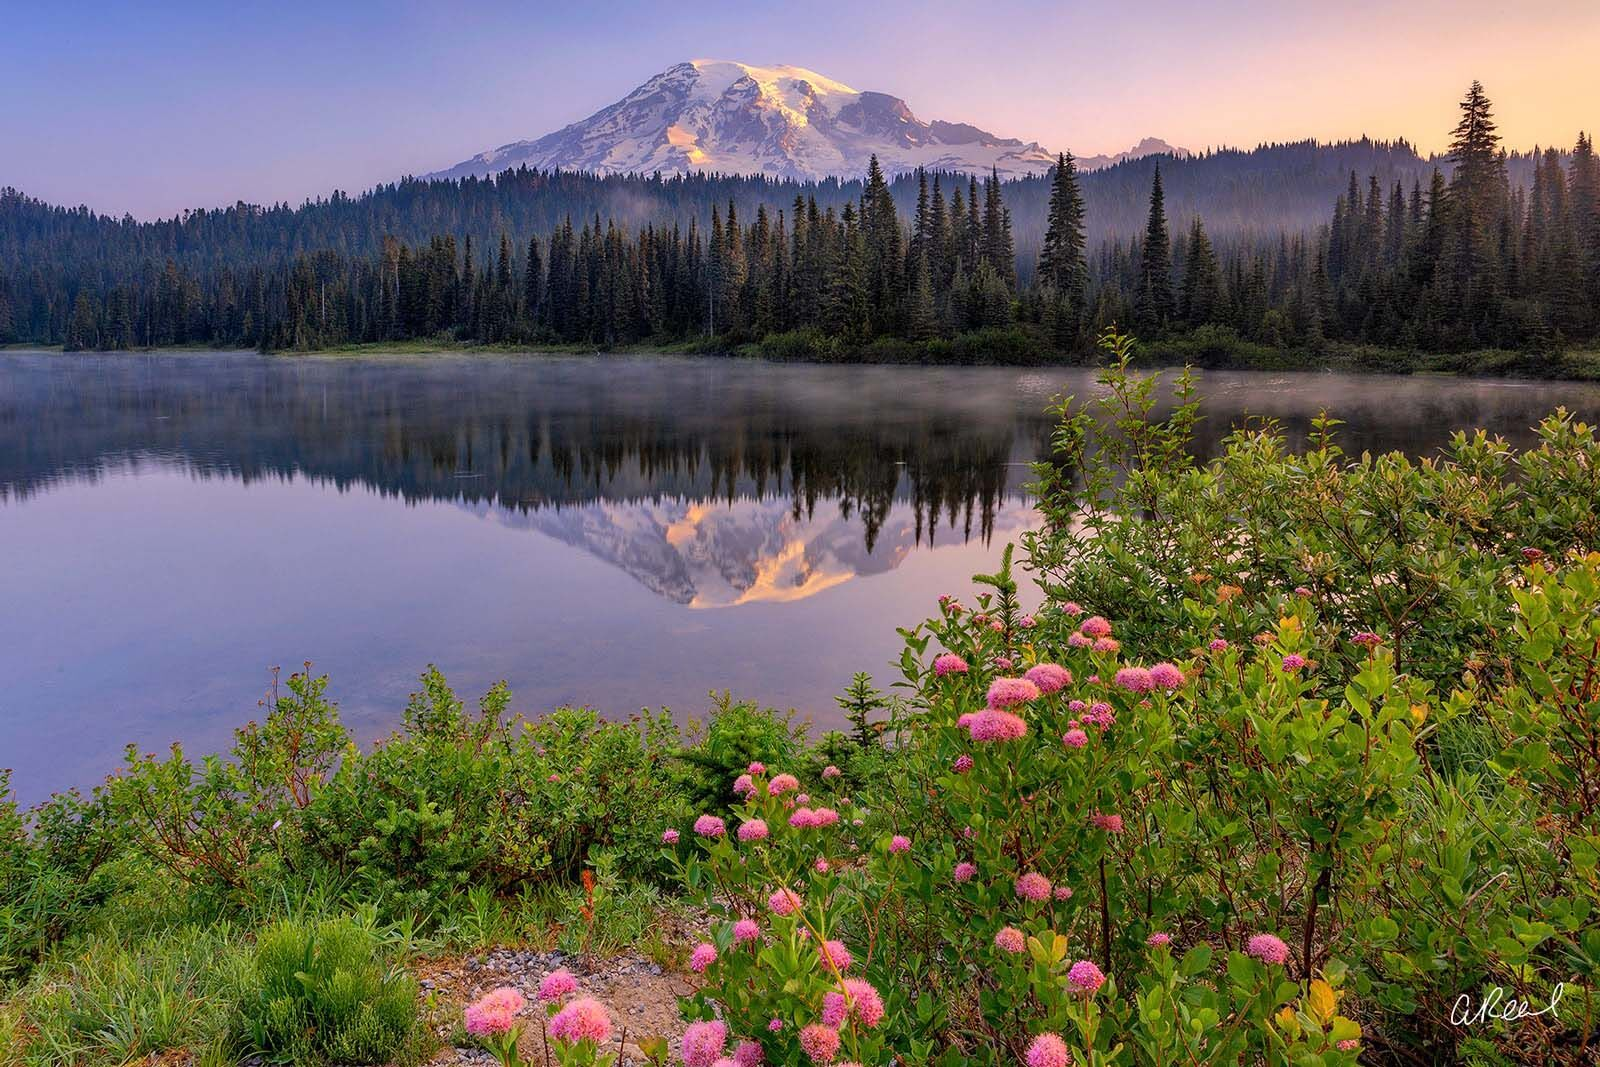 Create a window into nature with Aaron Reed's limited edition photography print, The Calm, from his Mountains & Meadows Photography...